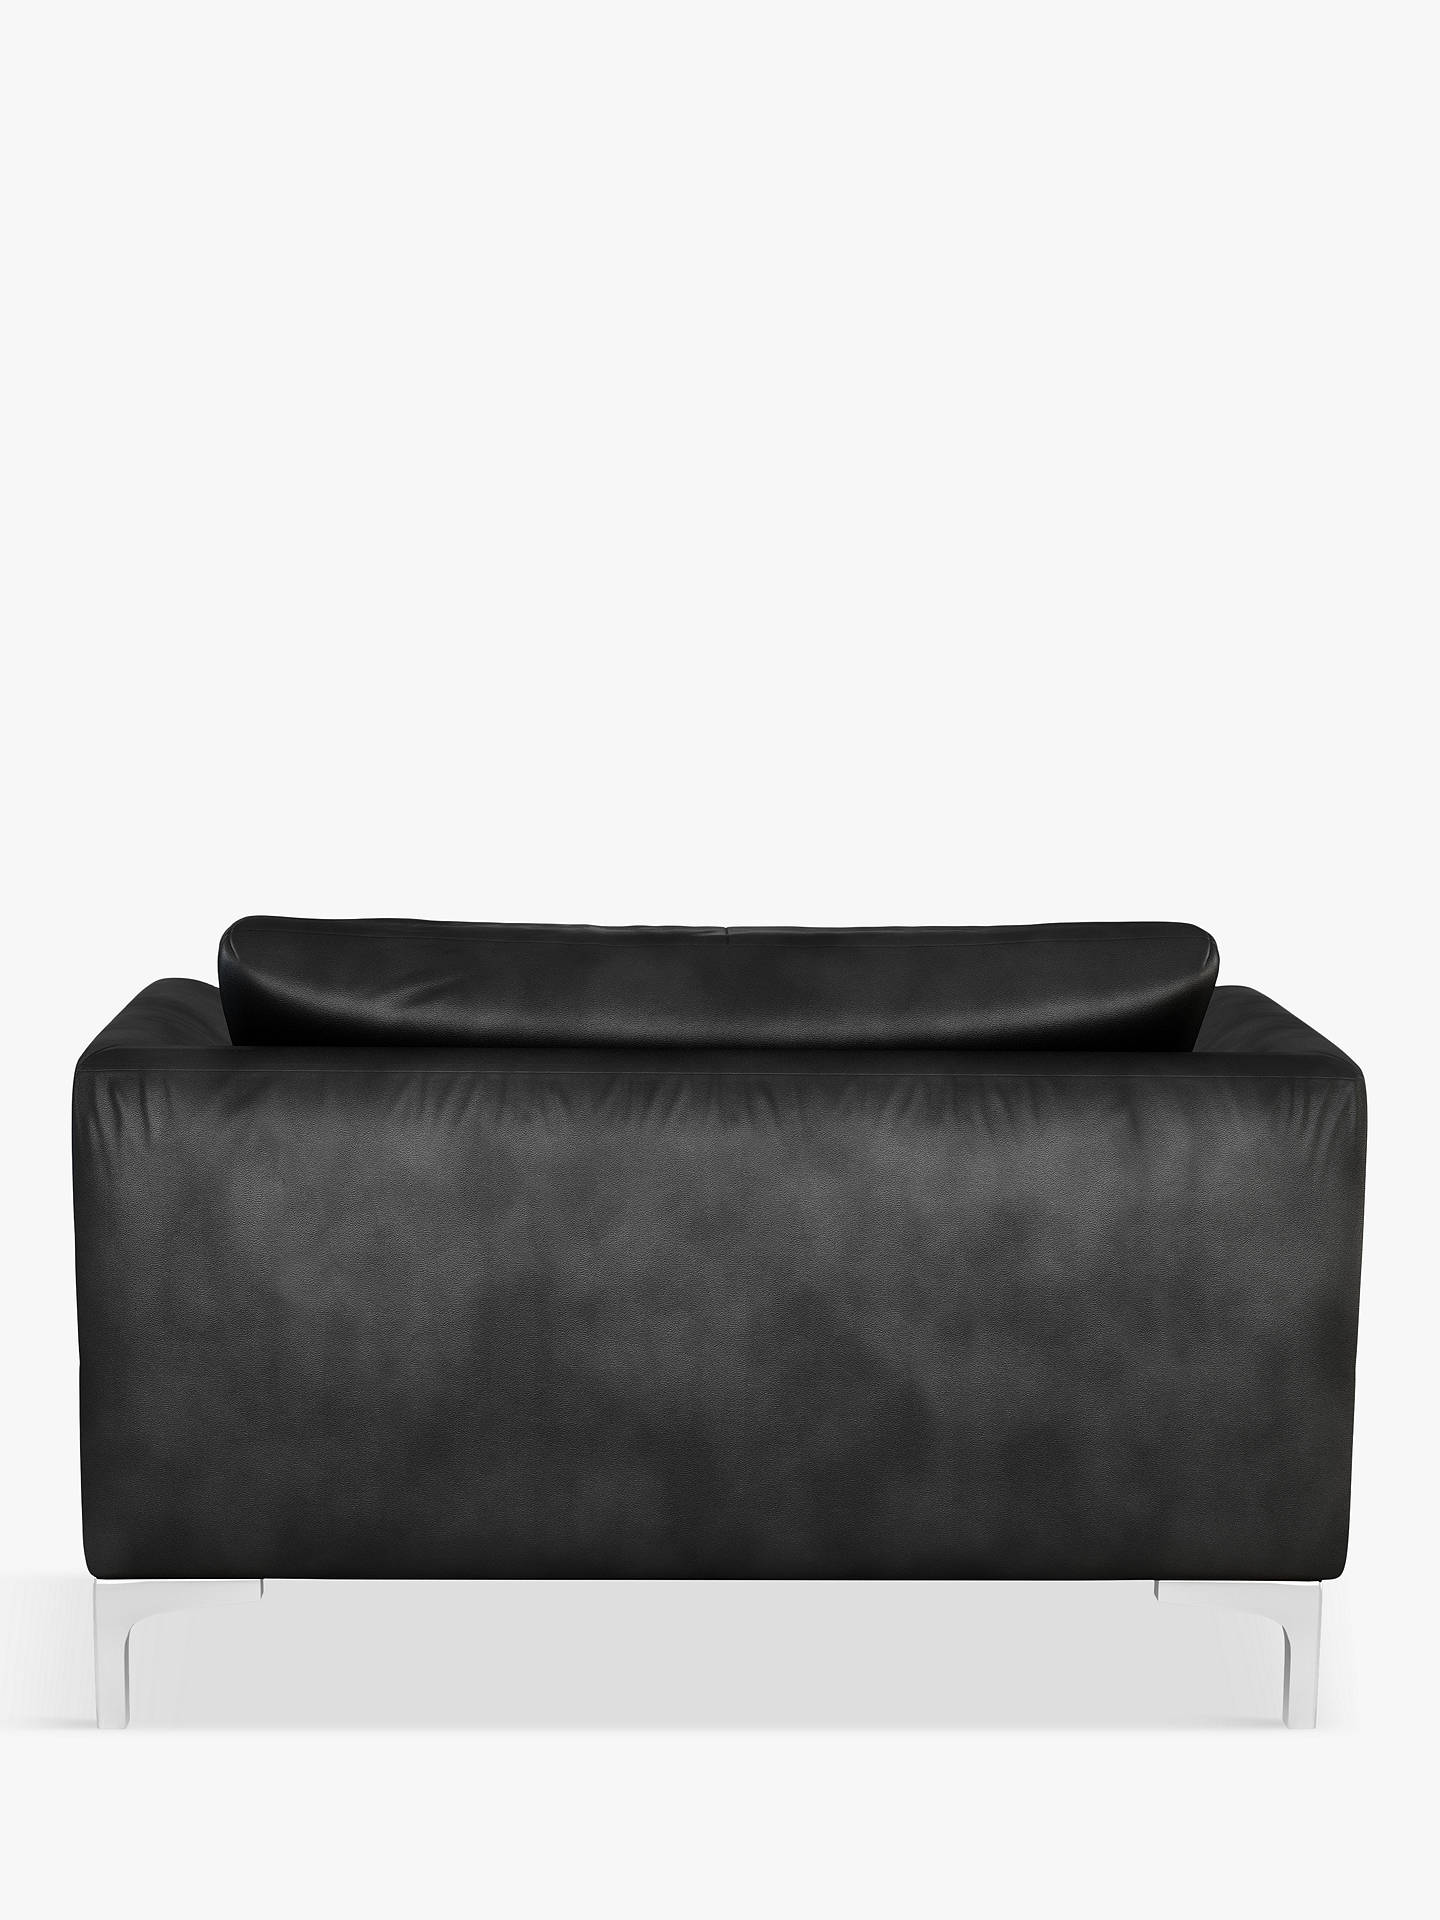 Buy John Lewis & Partners Belgrave Leather Snuggler, Metal Leg, Contempo Black Online at johnlewis.com